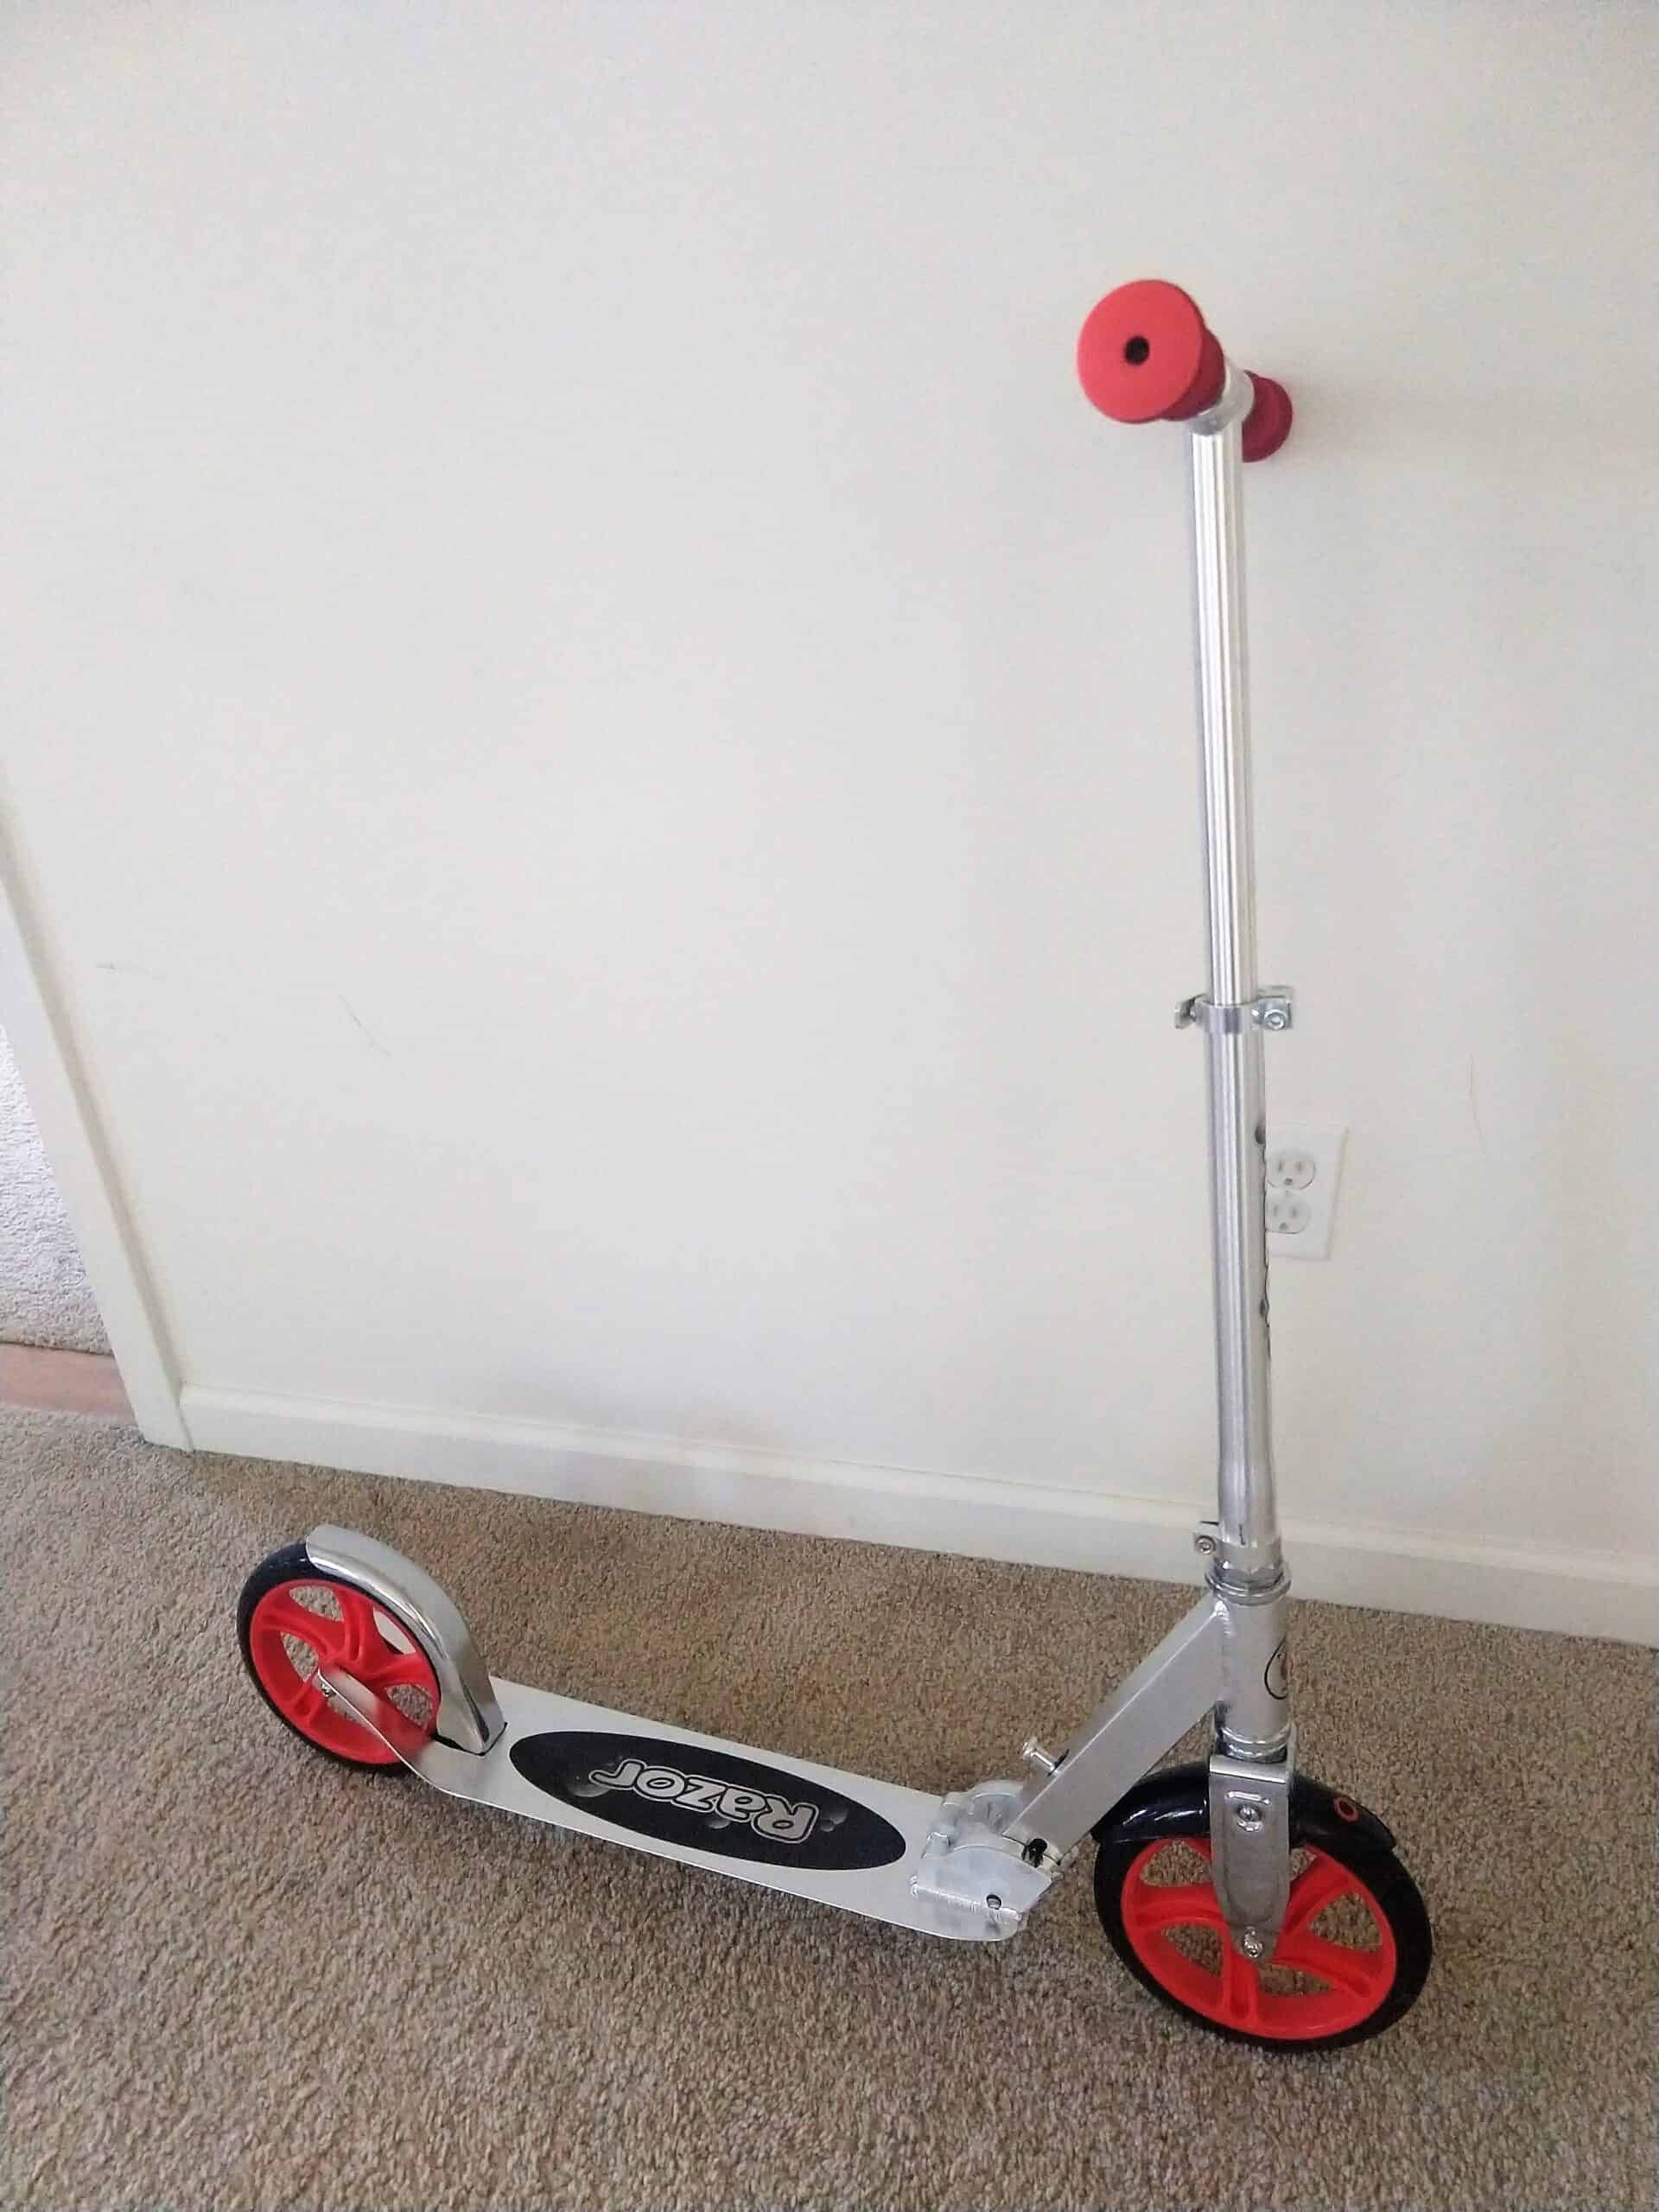 The Razor A5 Lux is a great deal on an adult kick scooter for fun, errands, and commuting